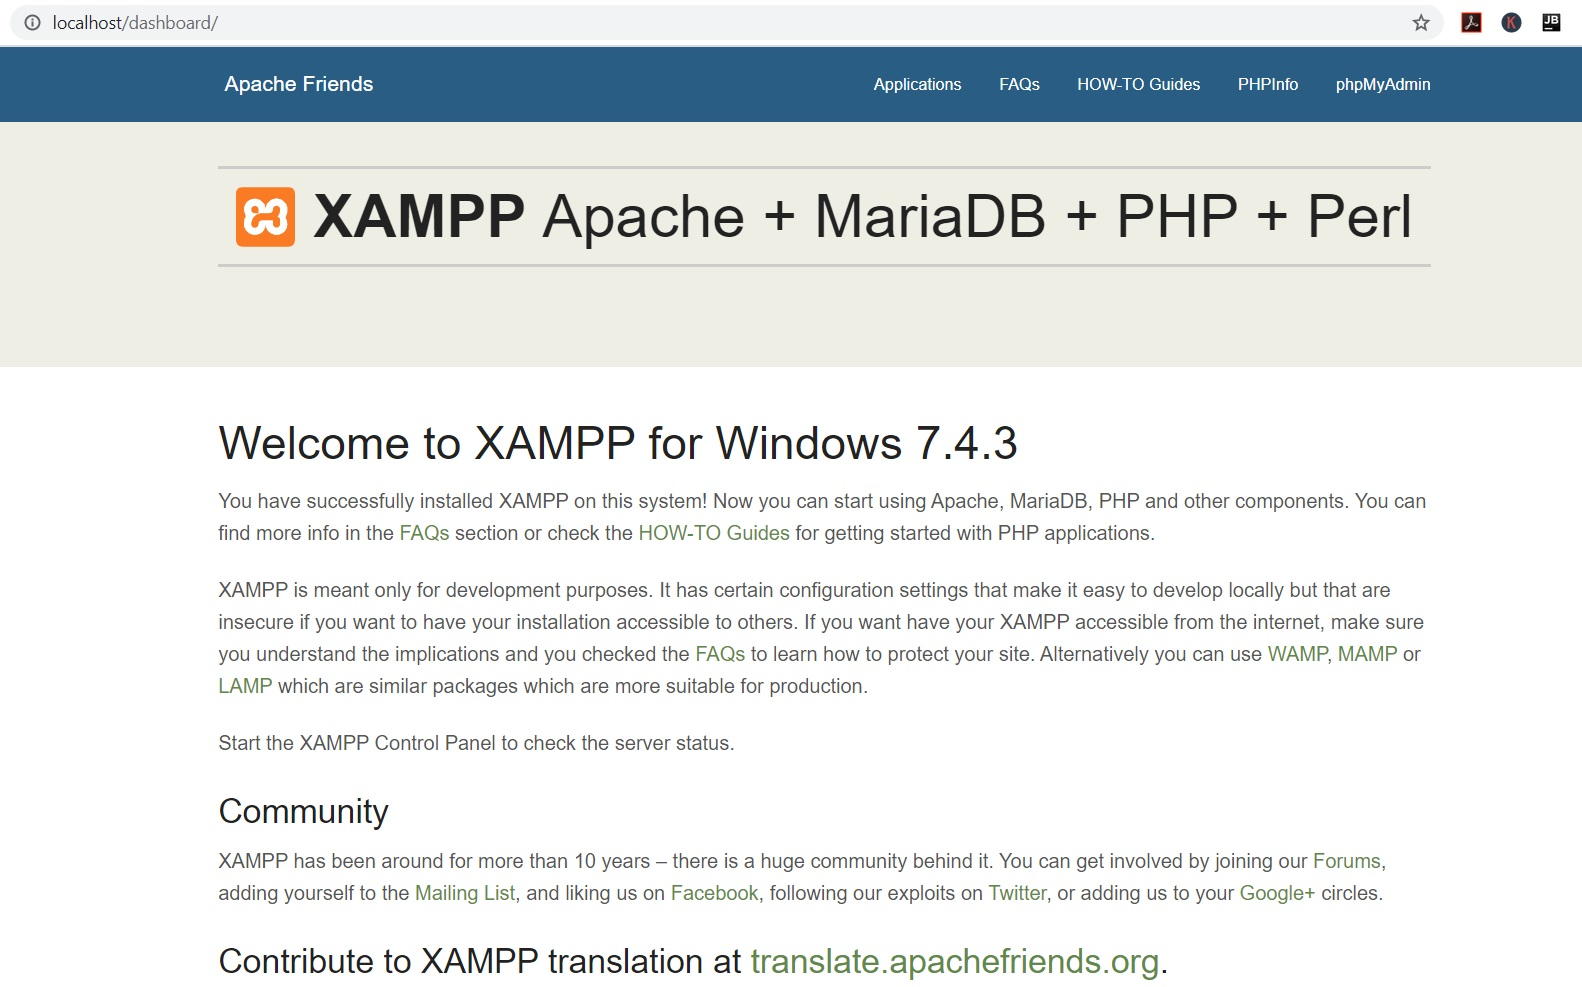 XAMPP localhost page in Browser